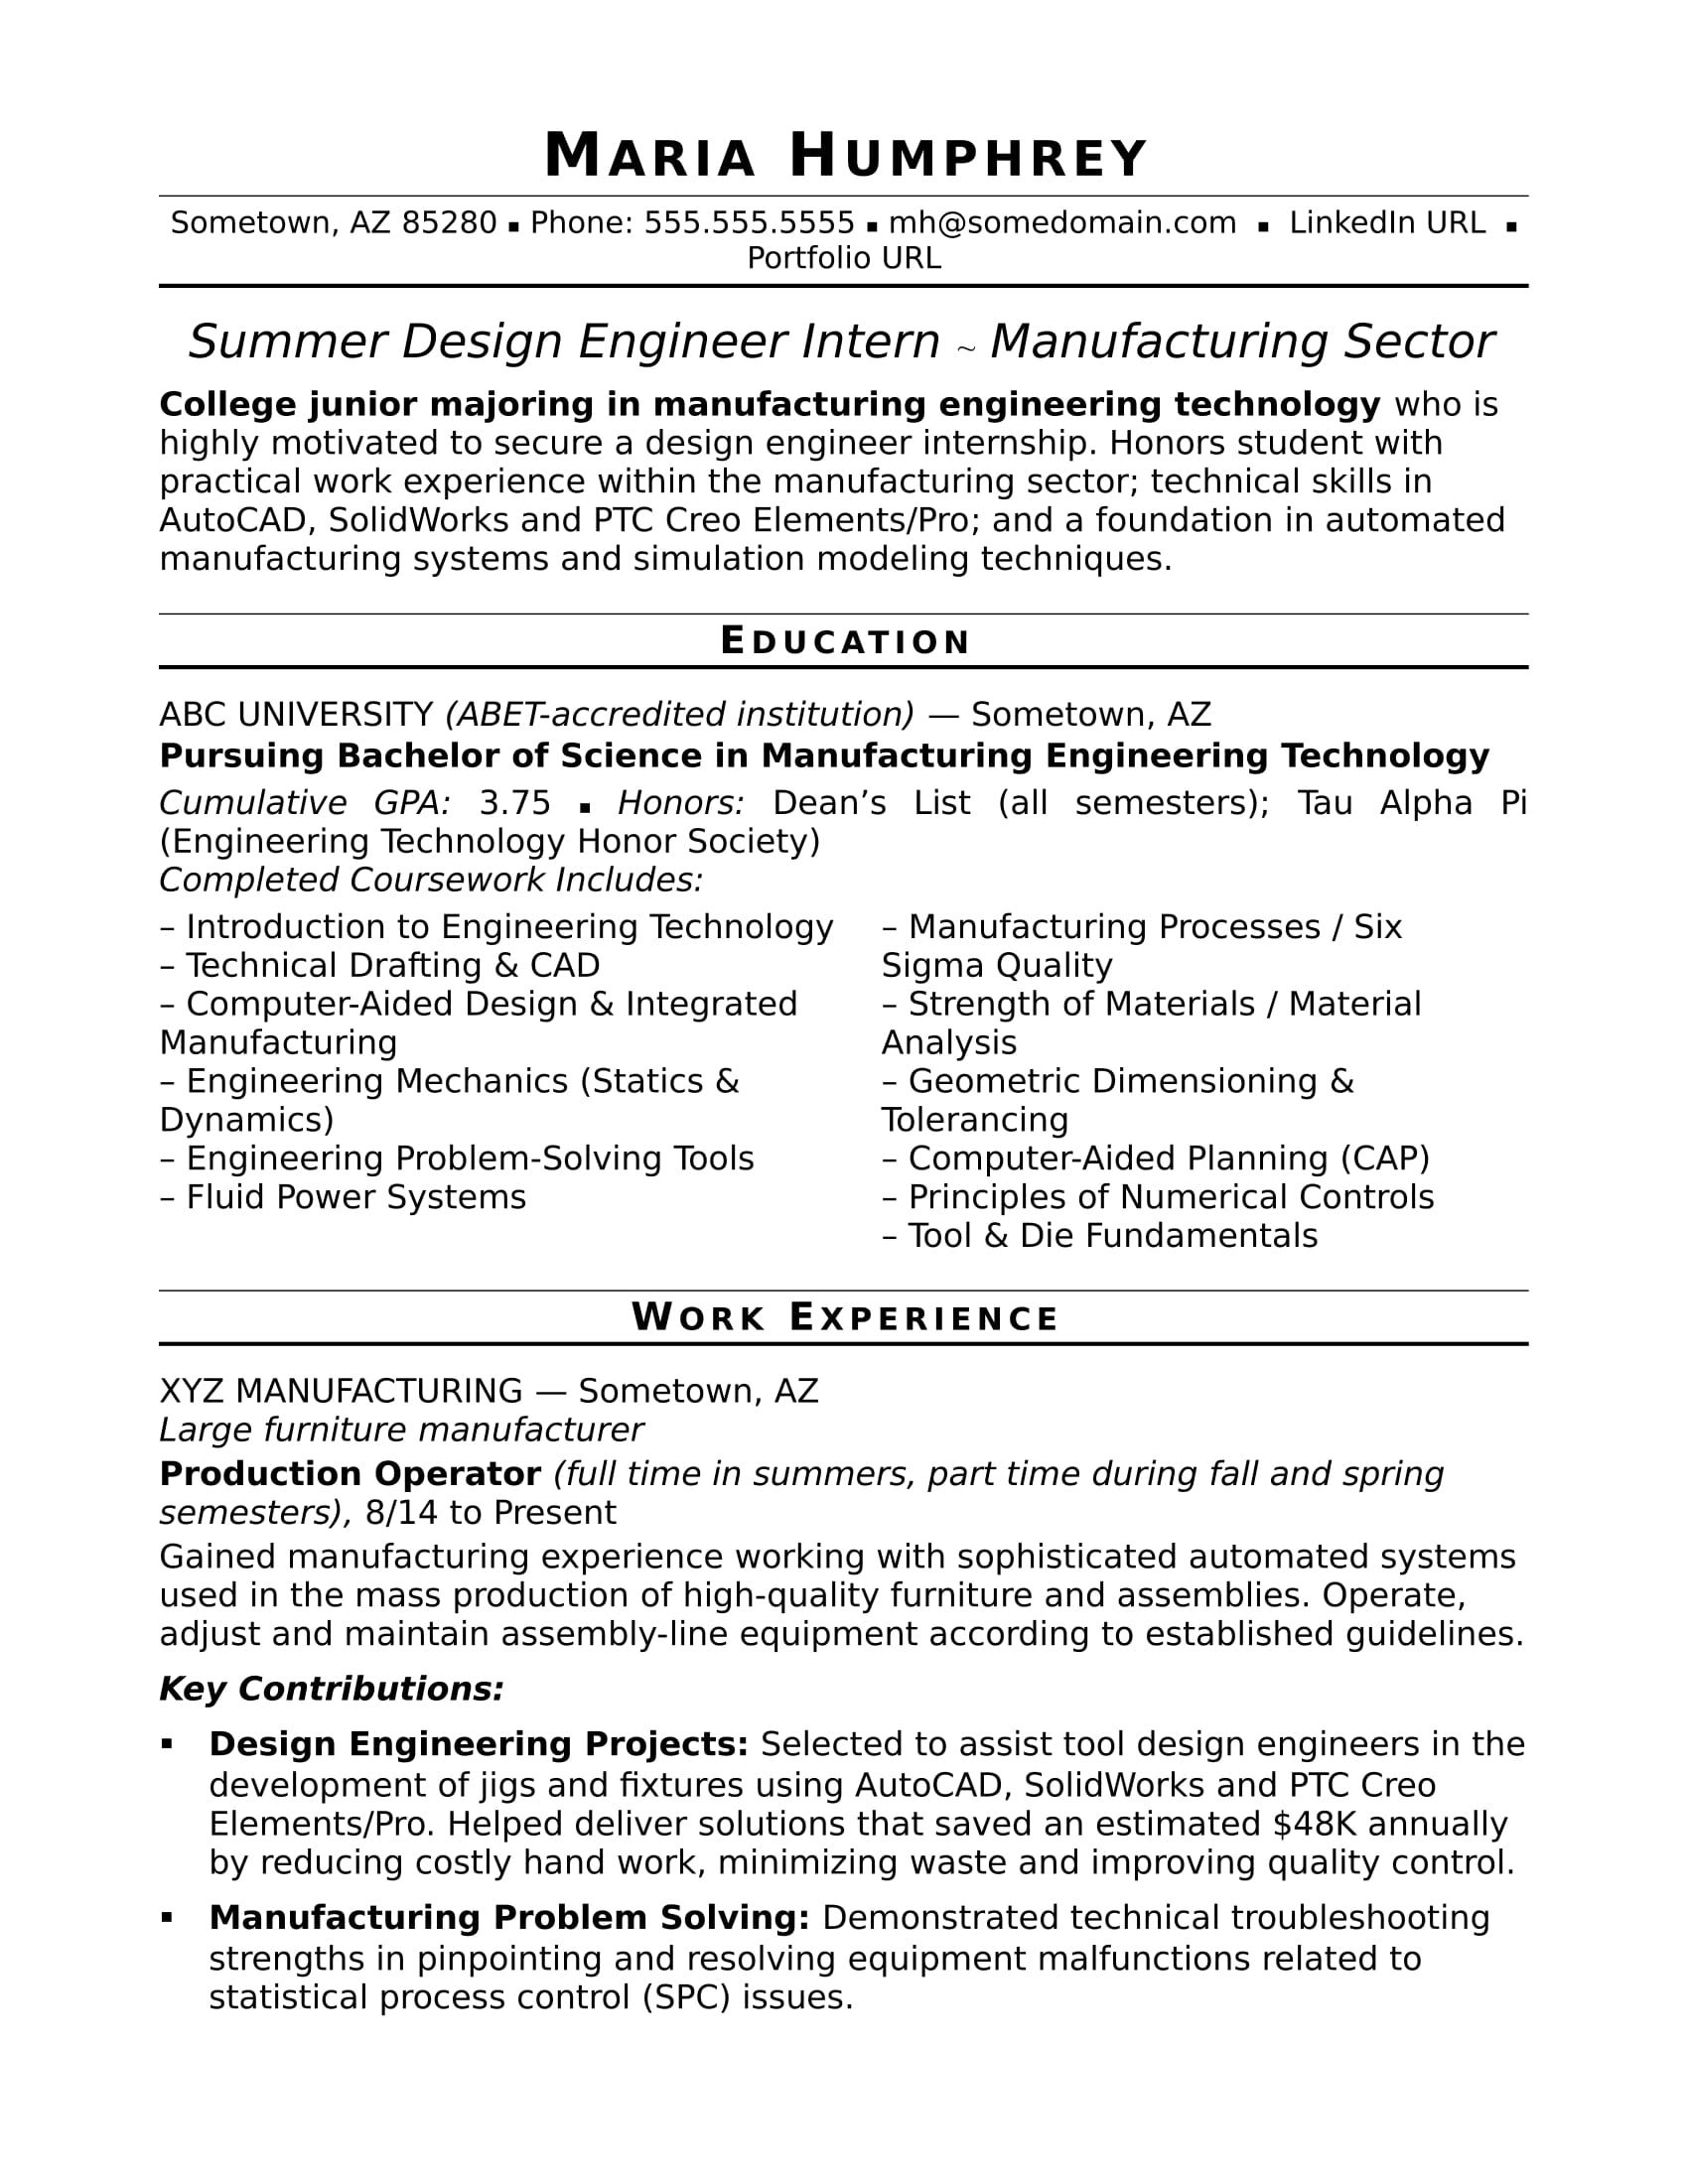 Sample Resume for an EntryLevel Design Engineer Monster